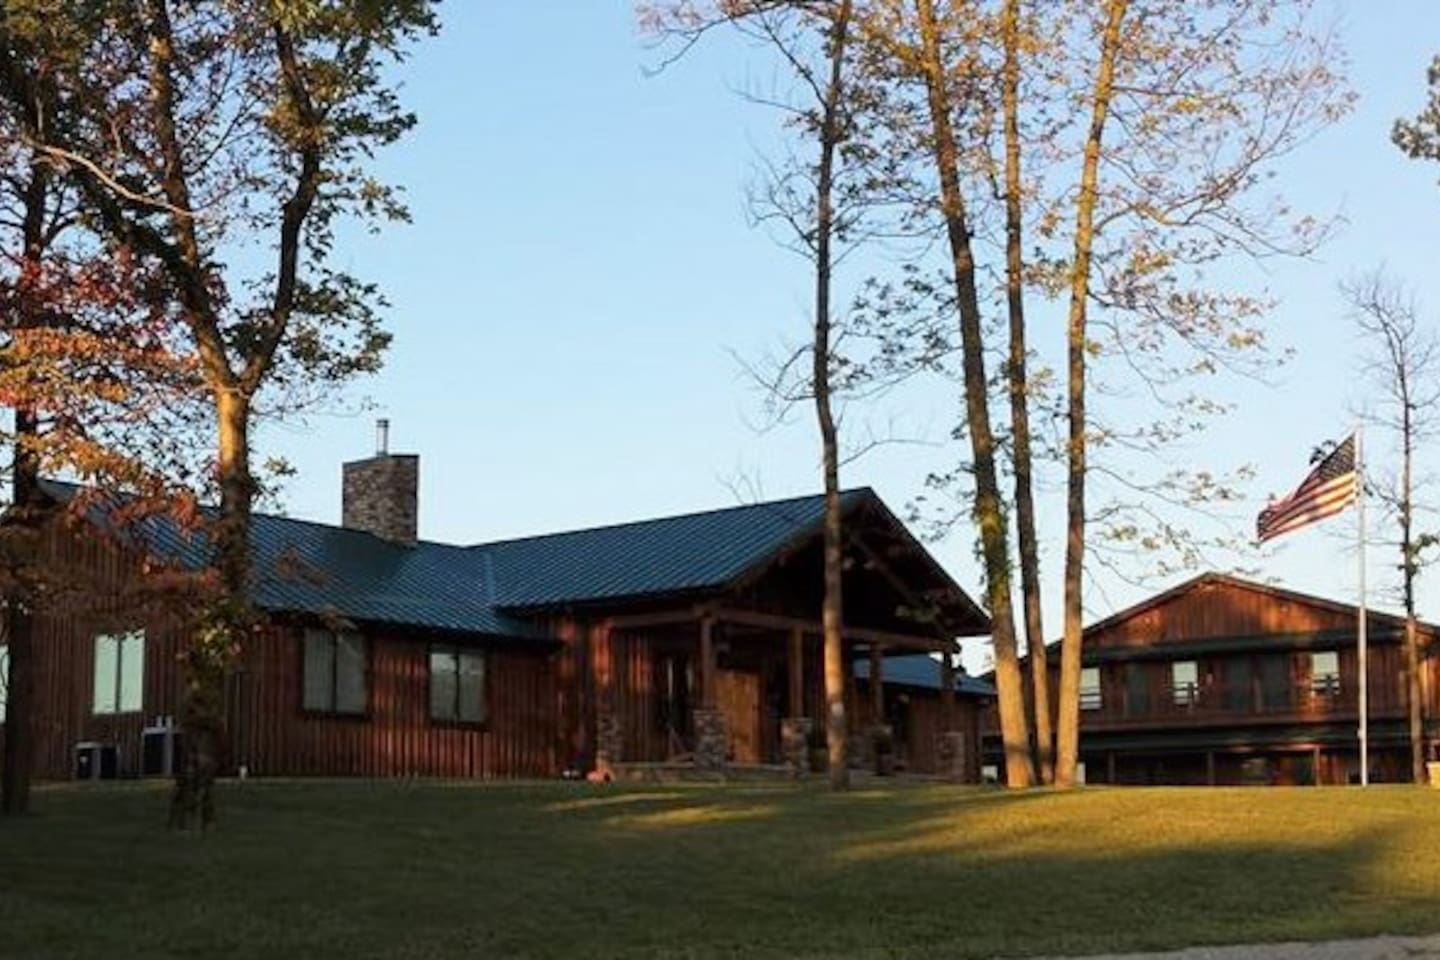 This is the front of our lodge with guest house beside it.